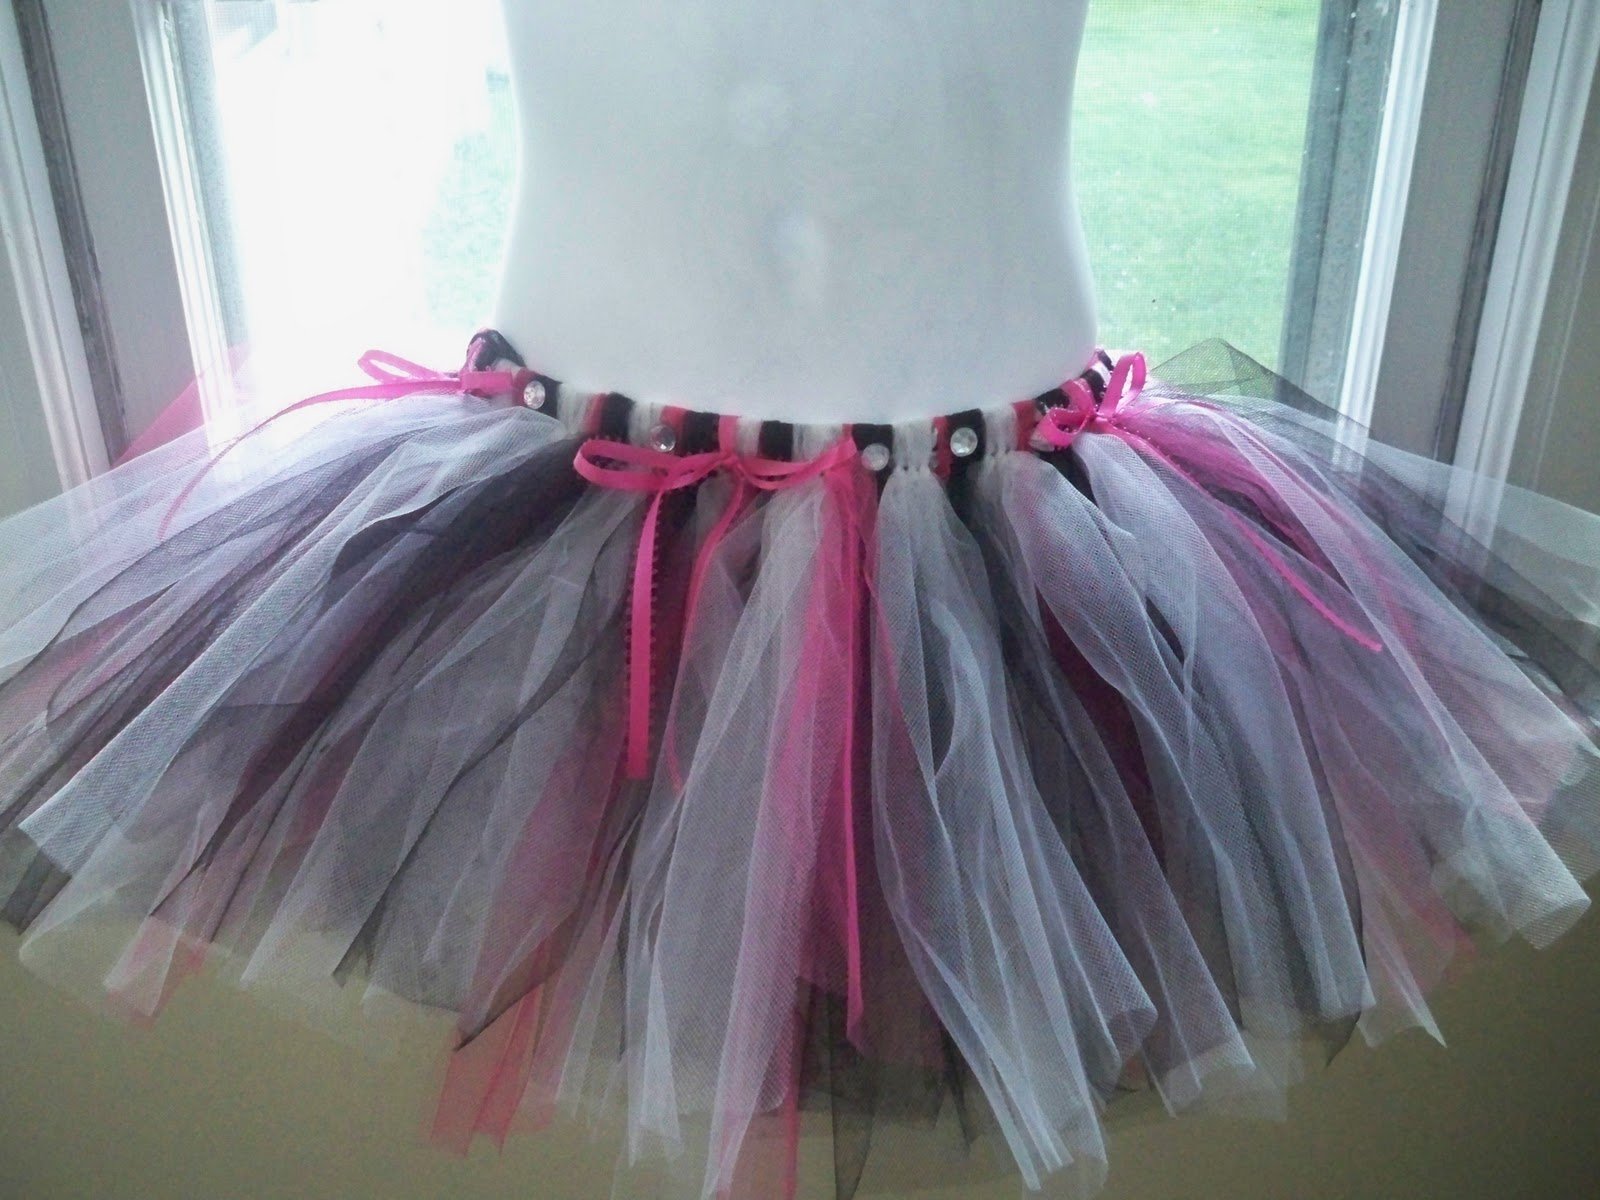 Buy low price, high quality women tutu dress with worldwide shipping on r0nd.tk